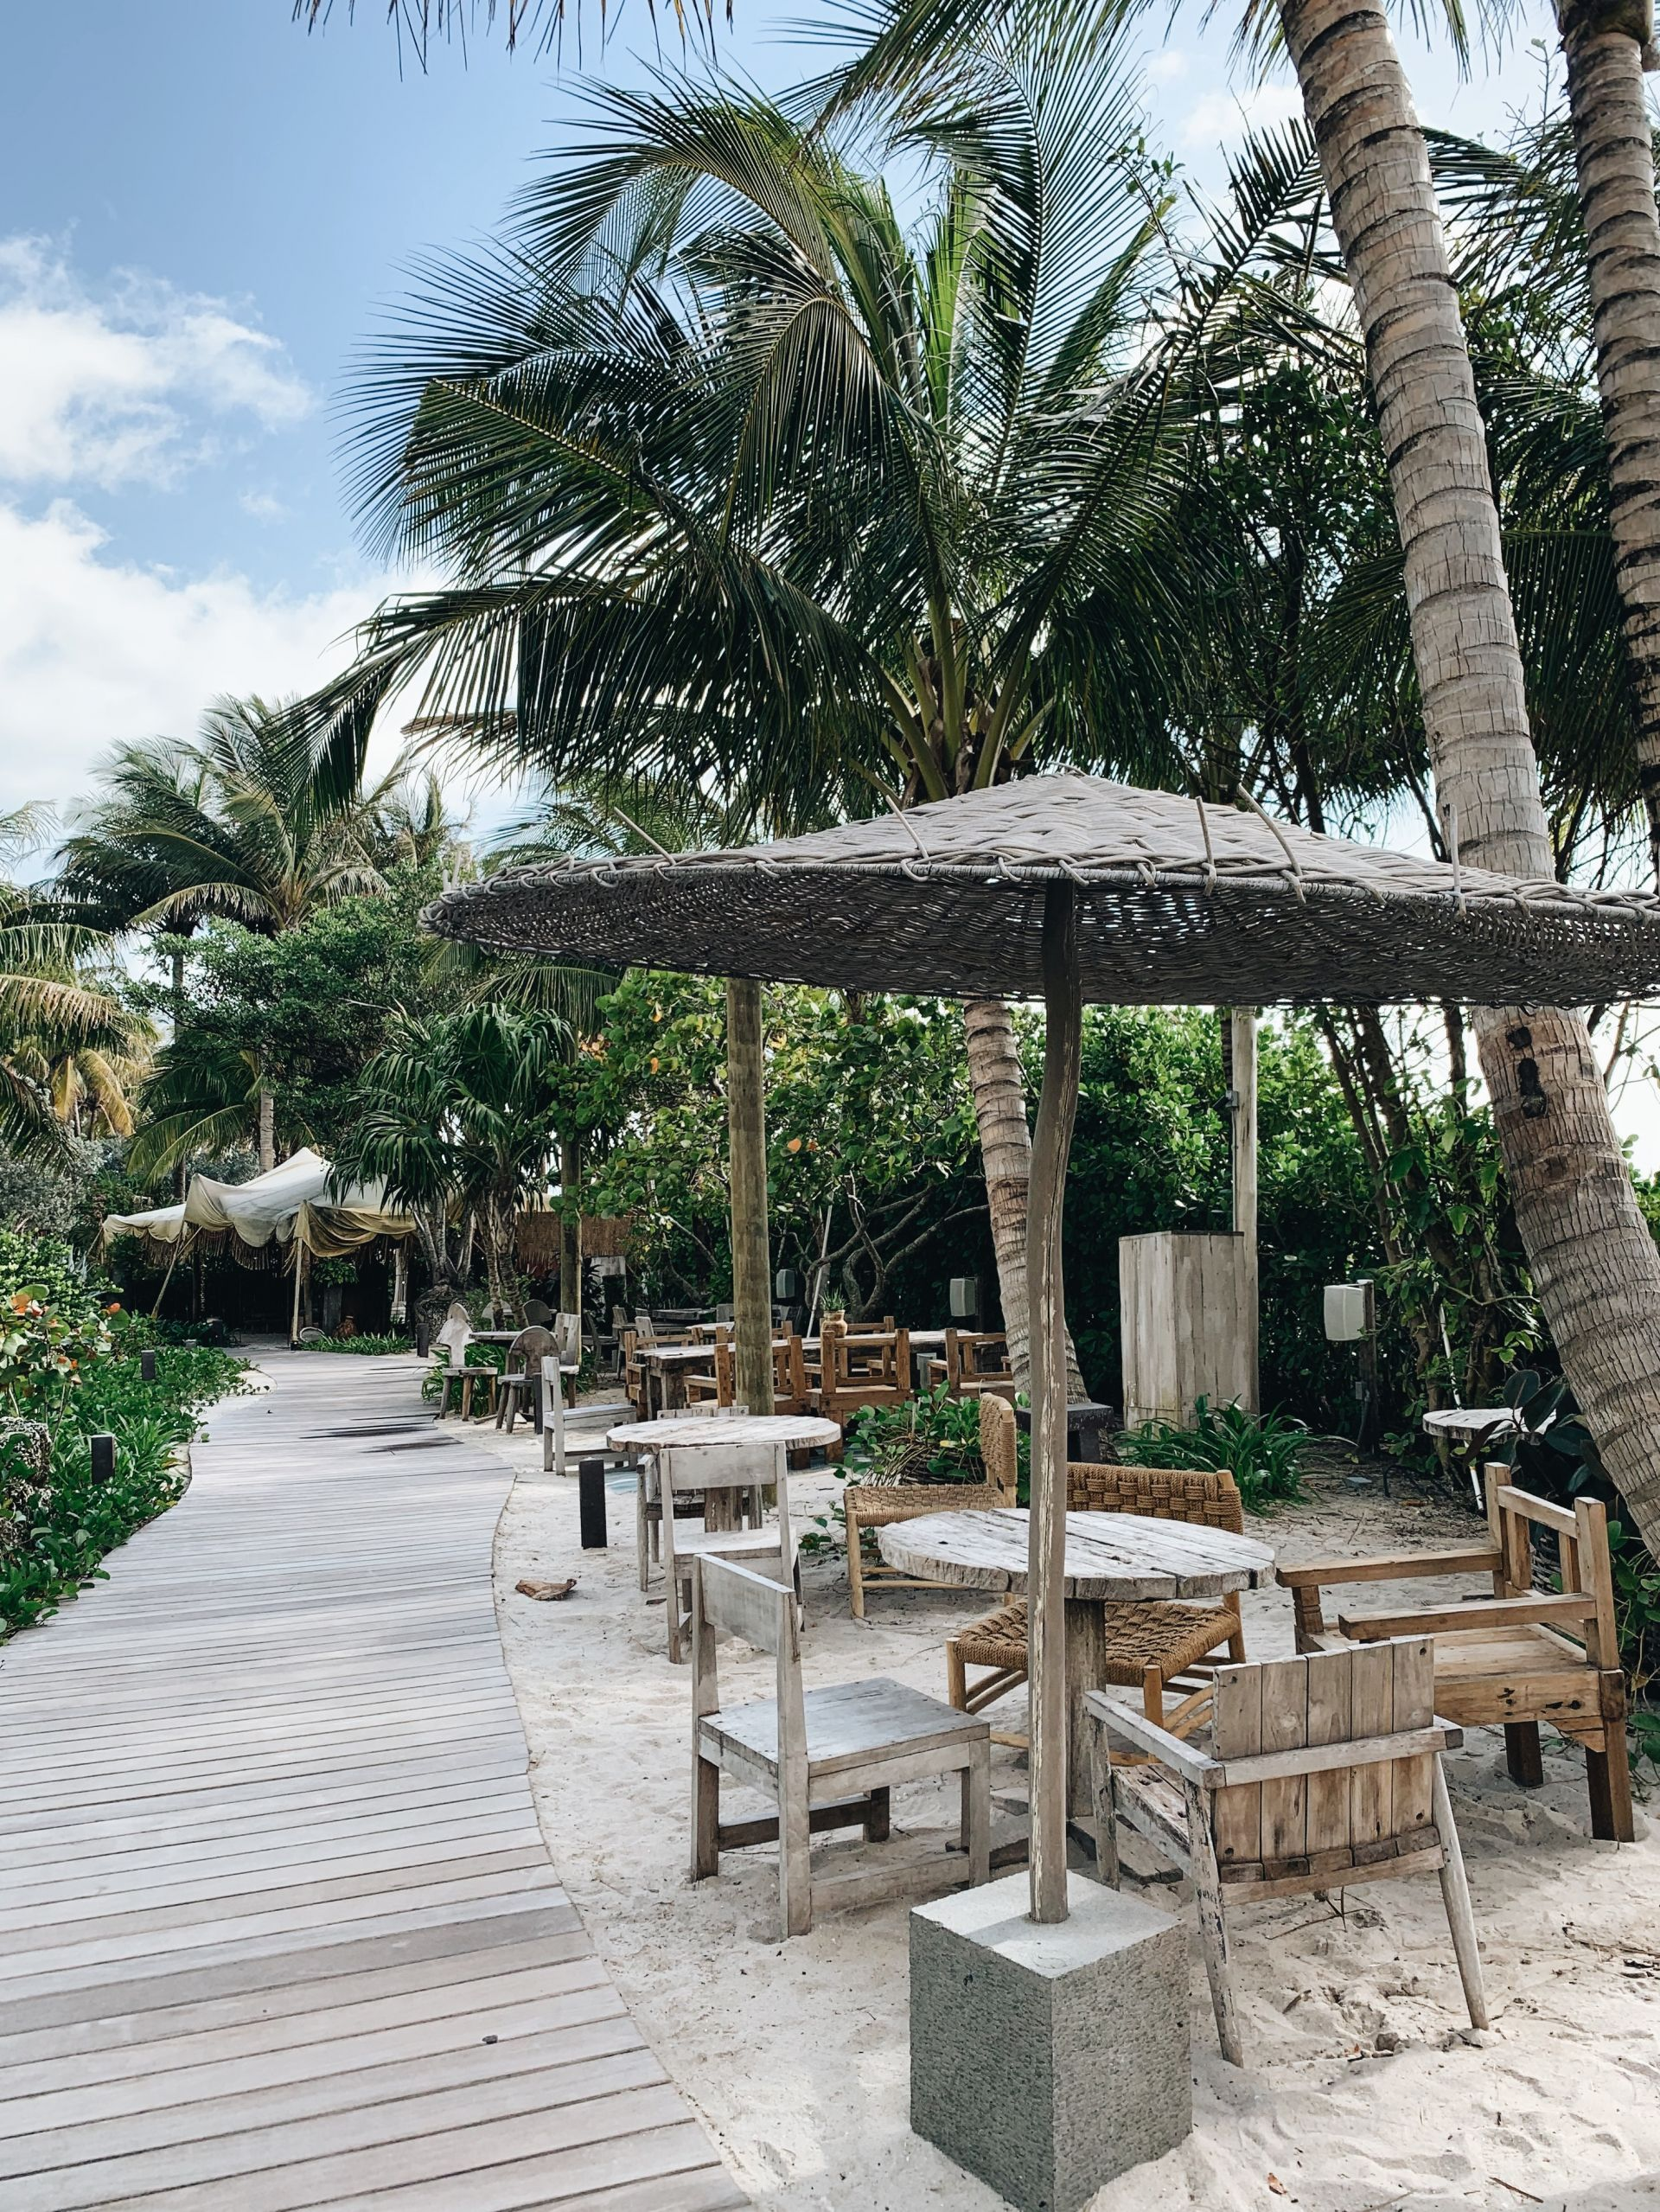 Travel blogger Meaghan Murray shares a review of the 1 Hotel in Miami Beach on her blog The Stopover